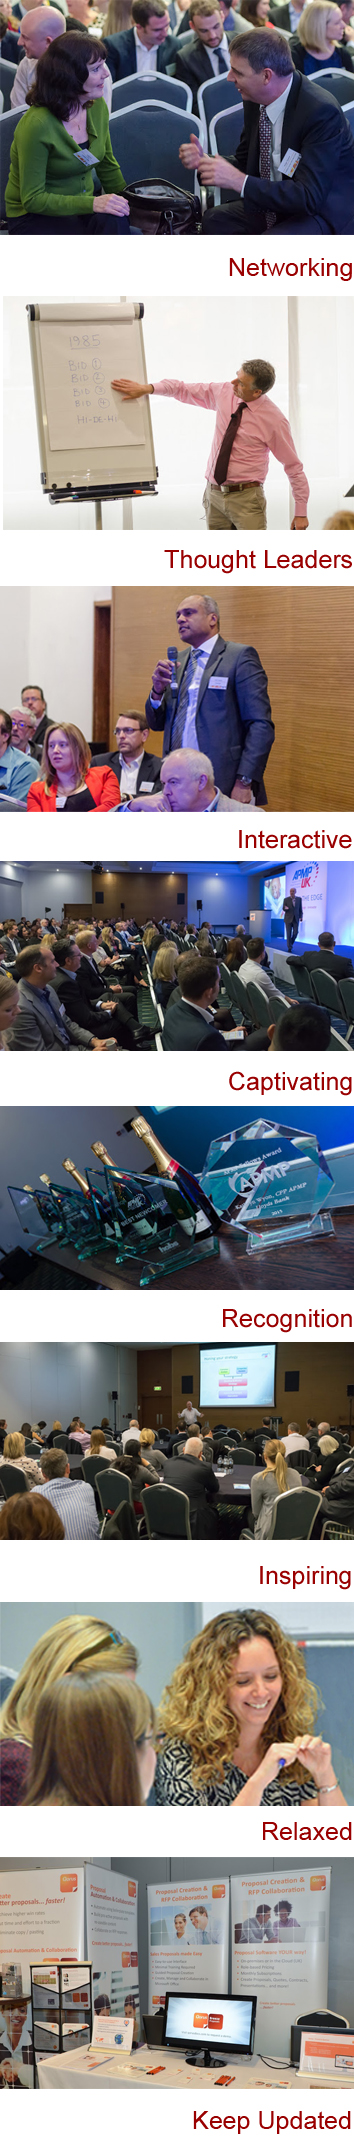 APMP UK Conference 2016